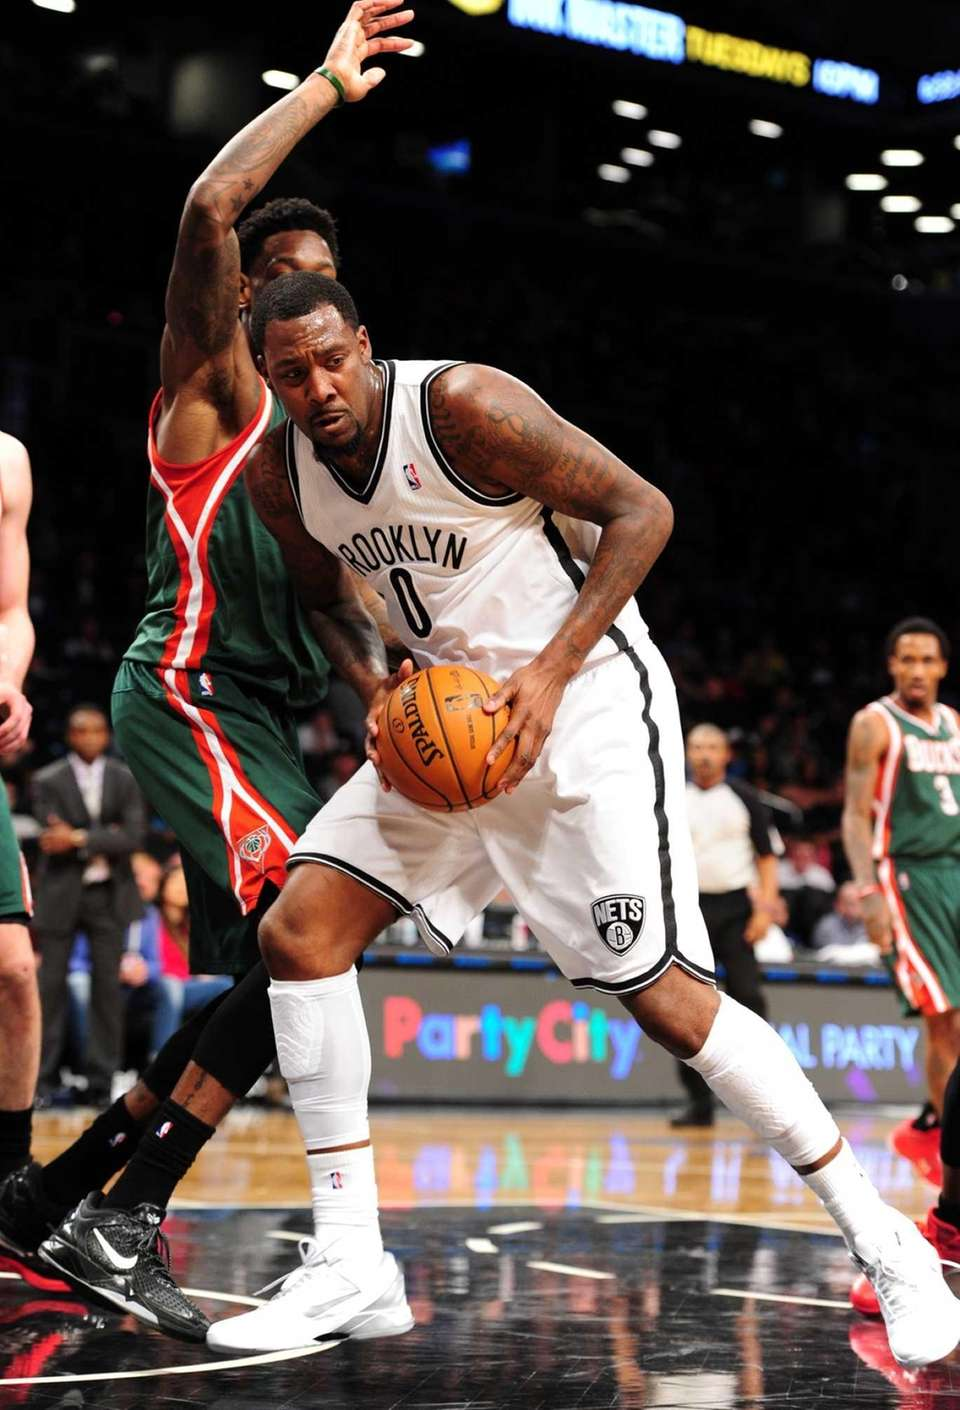 Andray Blatche of the Brooklyn Nets is guarded